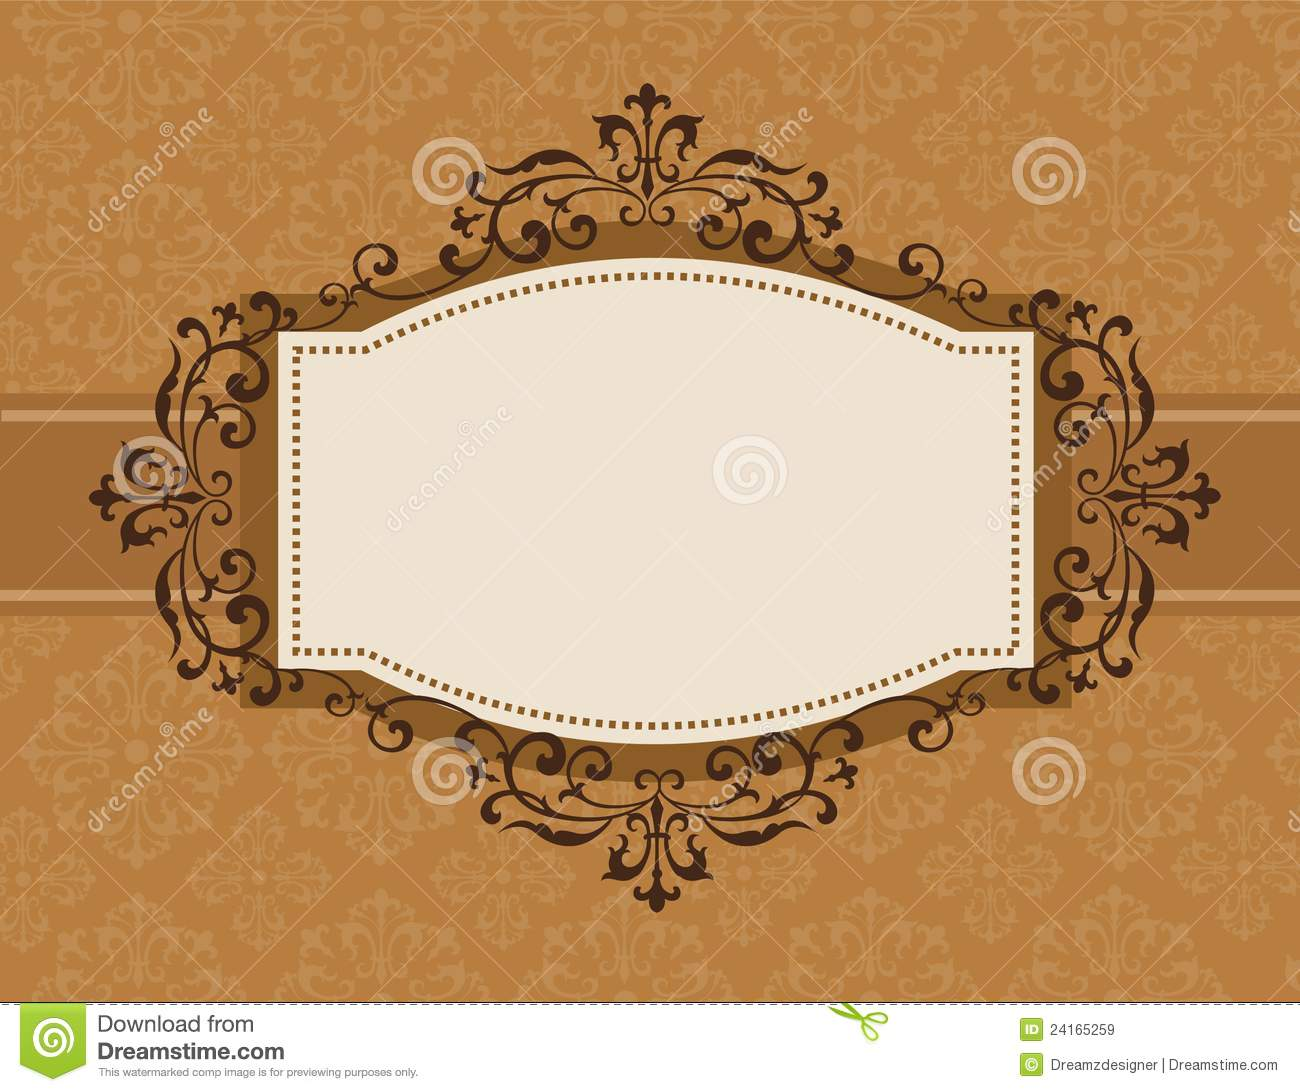 Retro Invitation Background Stock Vector - Image: 24165259